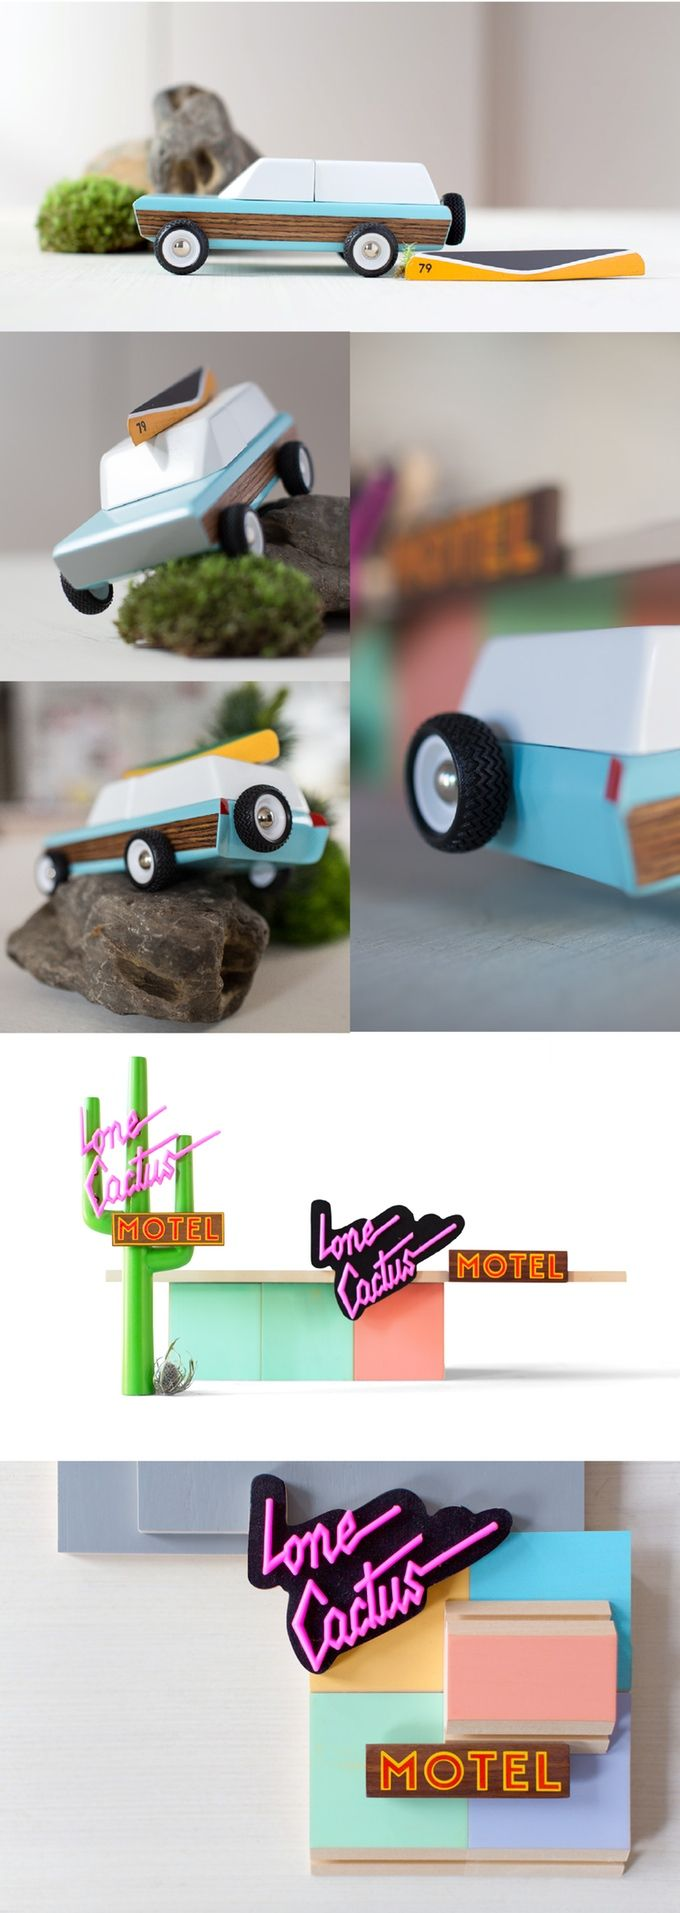 Candylab Toys' colorful wooden cars celebrate the golden age of American road trips and the rebirth of American manufacturing.